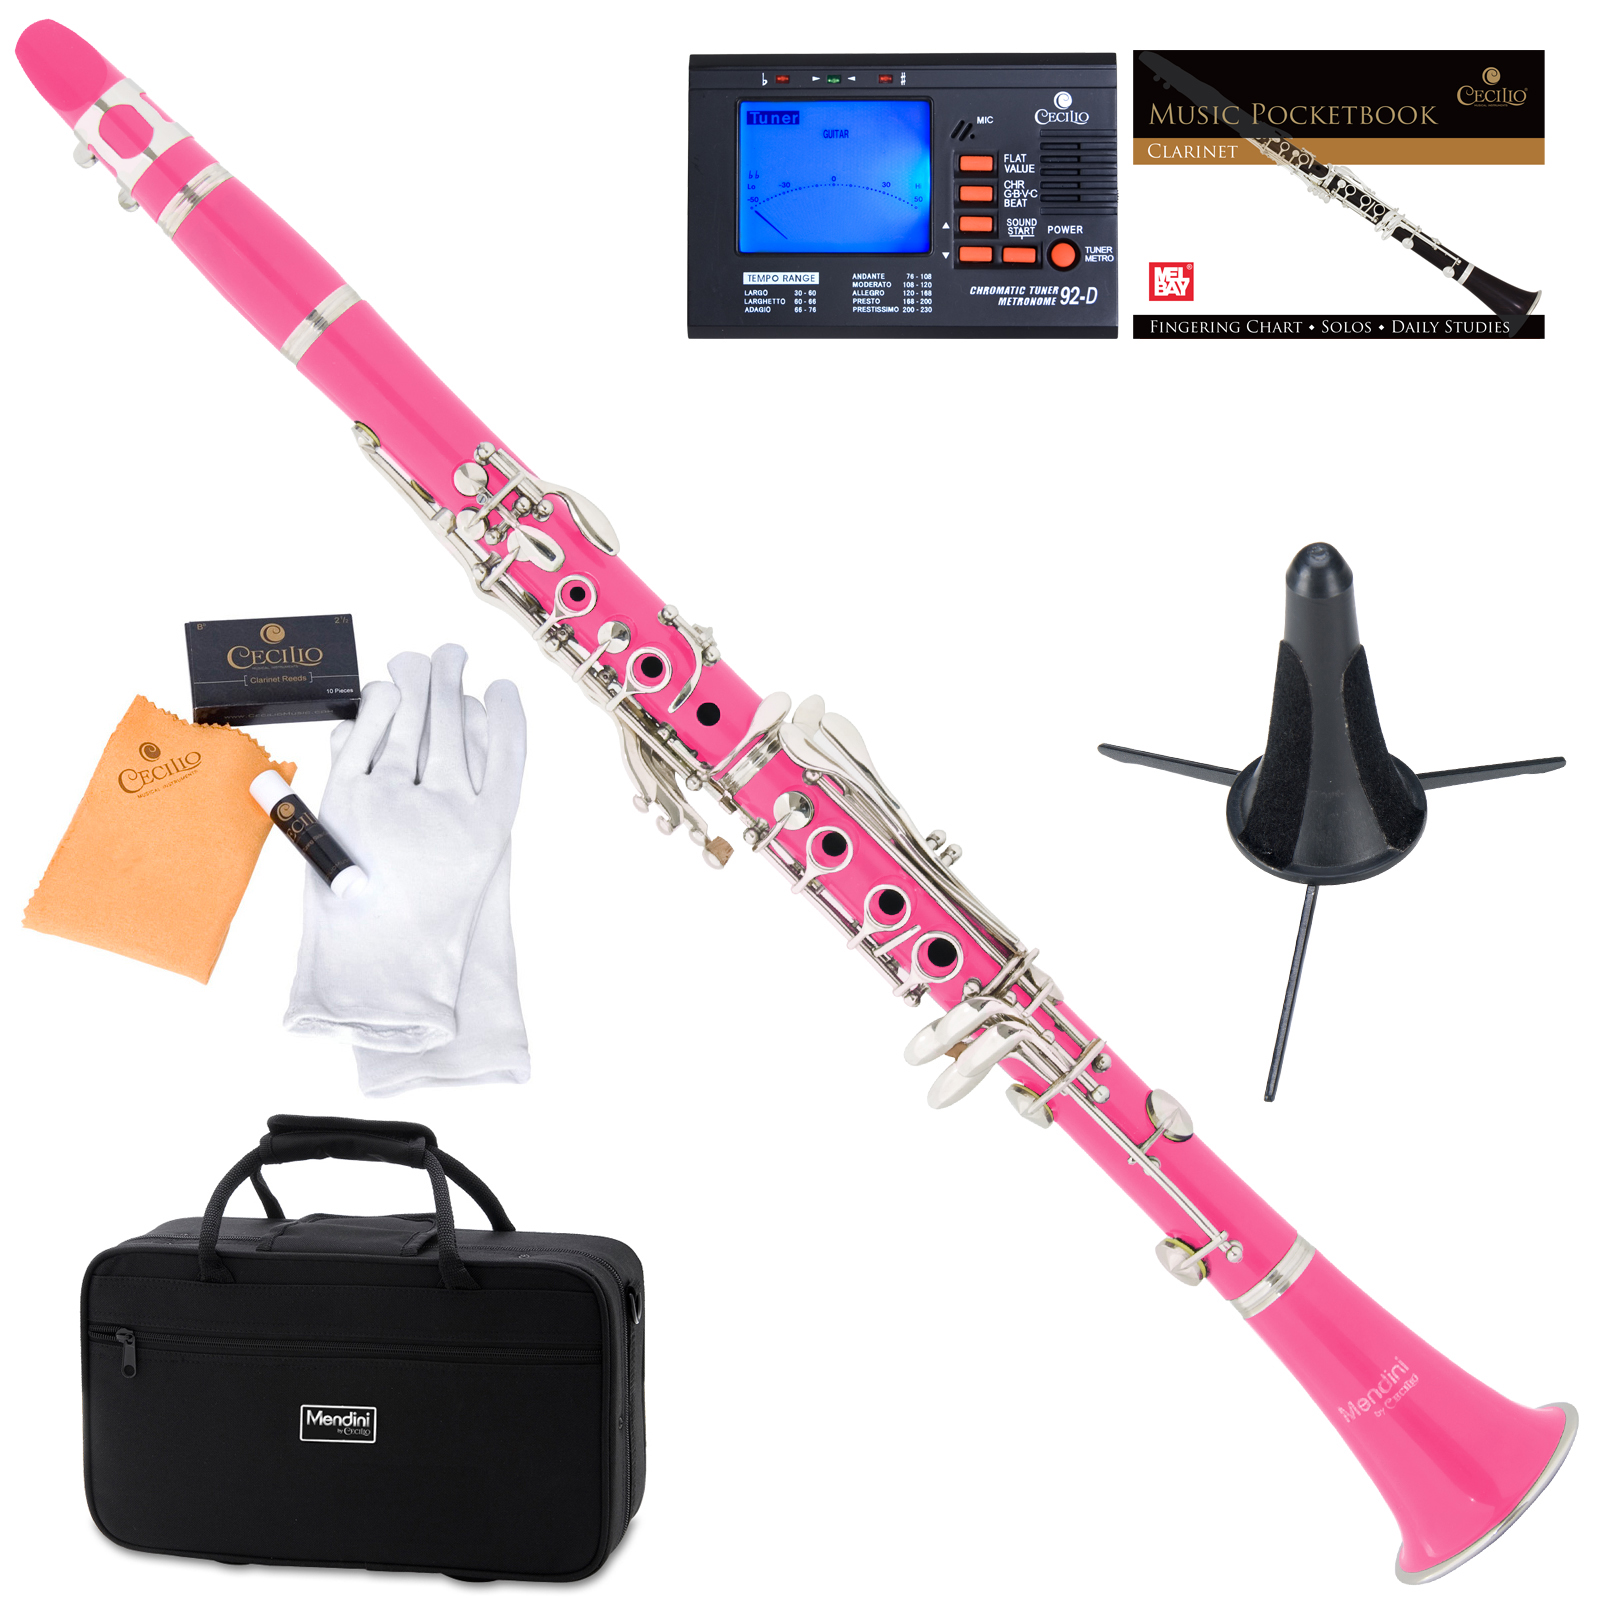 Mendini by Cecilio MCT-PK Pink ABS Bb Clarinet w/1 Year Warranty, Stand, Tuner, 10 Reeds, Pocketbook, Mouthpiece, Case, B Flat